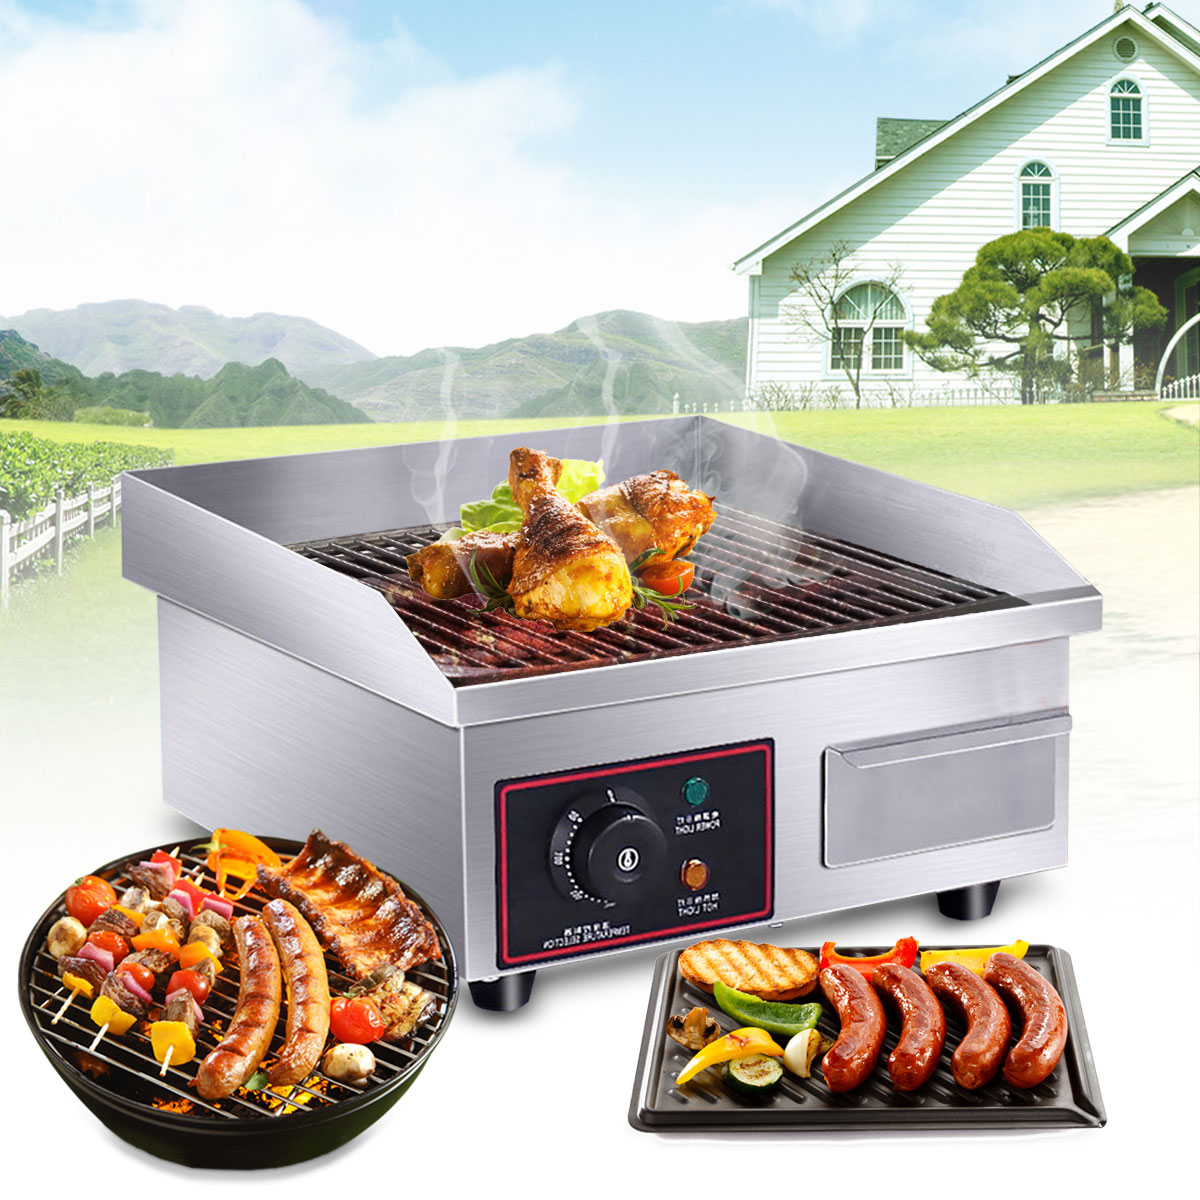 1500W 110V Electric Countertop Griddle Commercial Restaurant Flat Top Grill BBQ